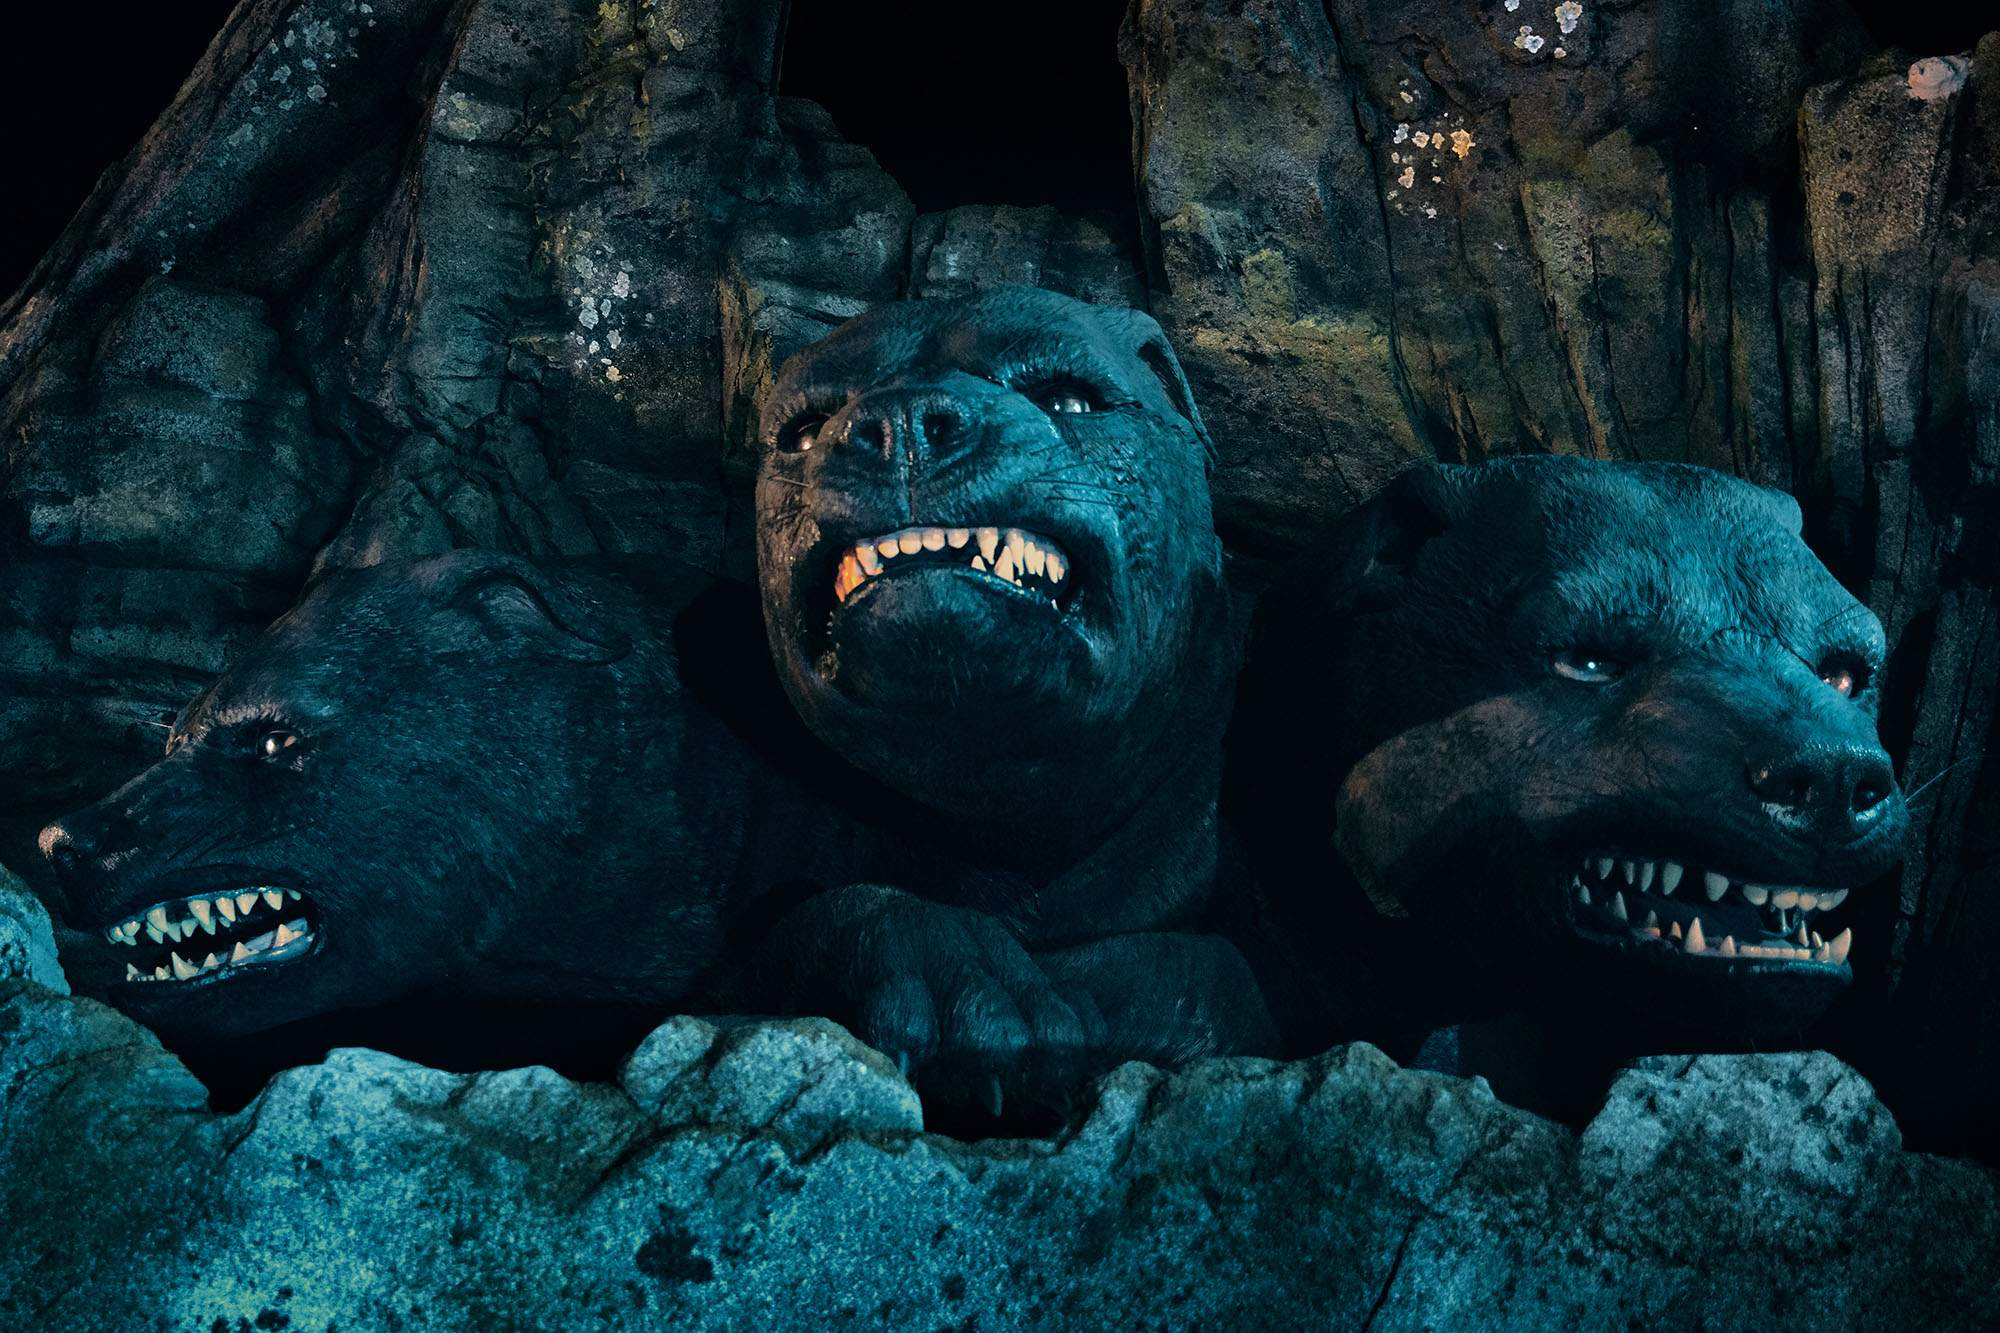 First Look Hagrid Ride Brings Fluffy The Three Headed Dog To Universal Orlando